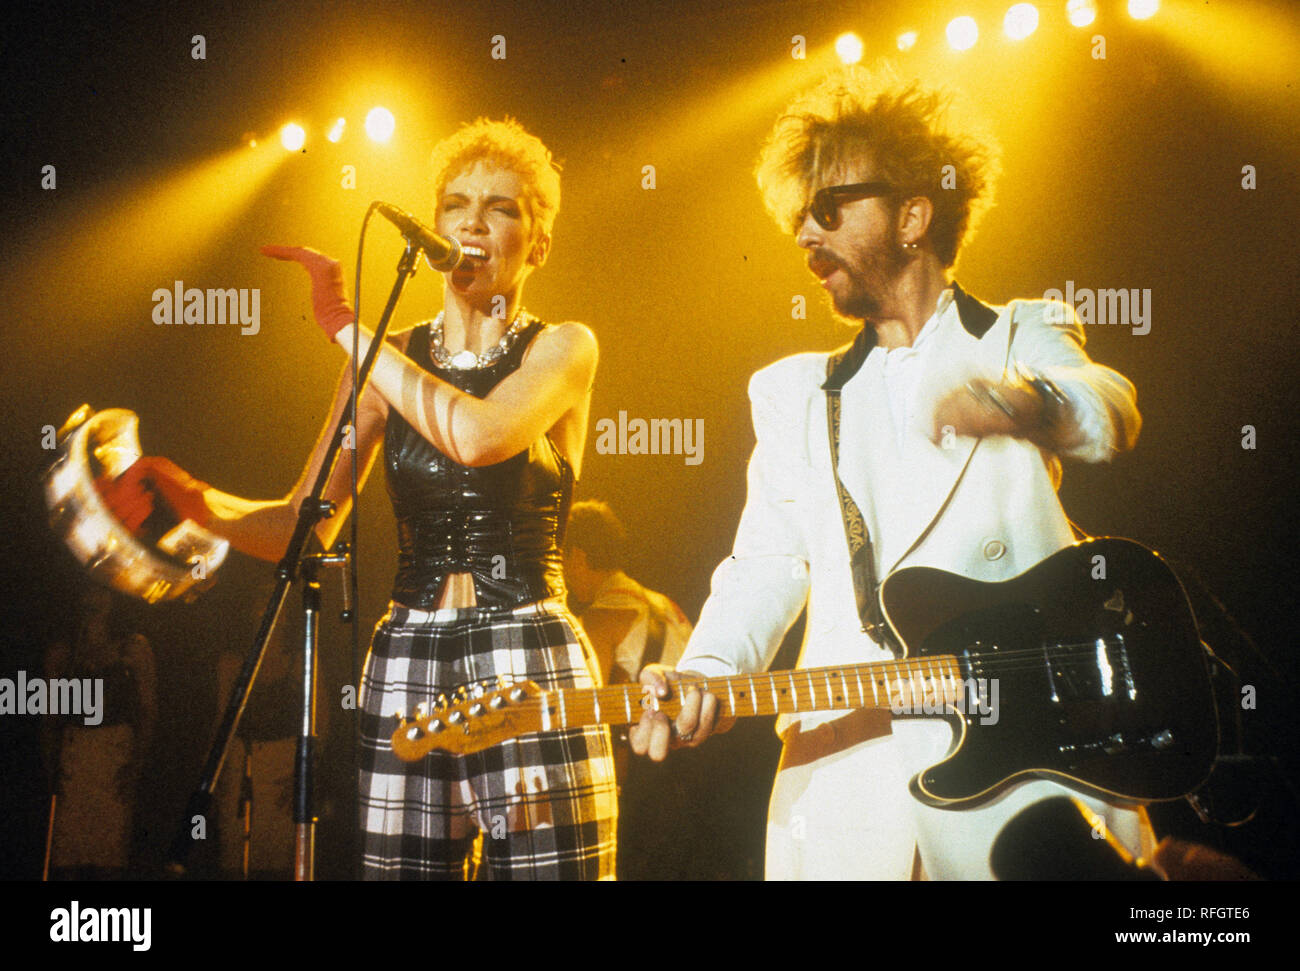 EURYTHMICS UK pop duo with Annie Lennox and David Stewart about 1989 - Stock Image